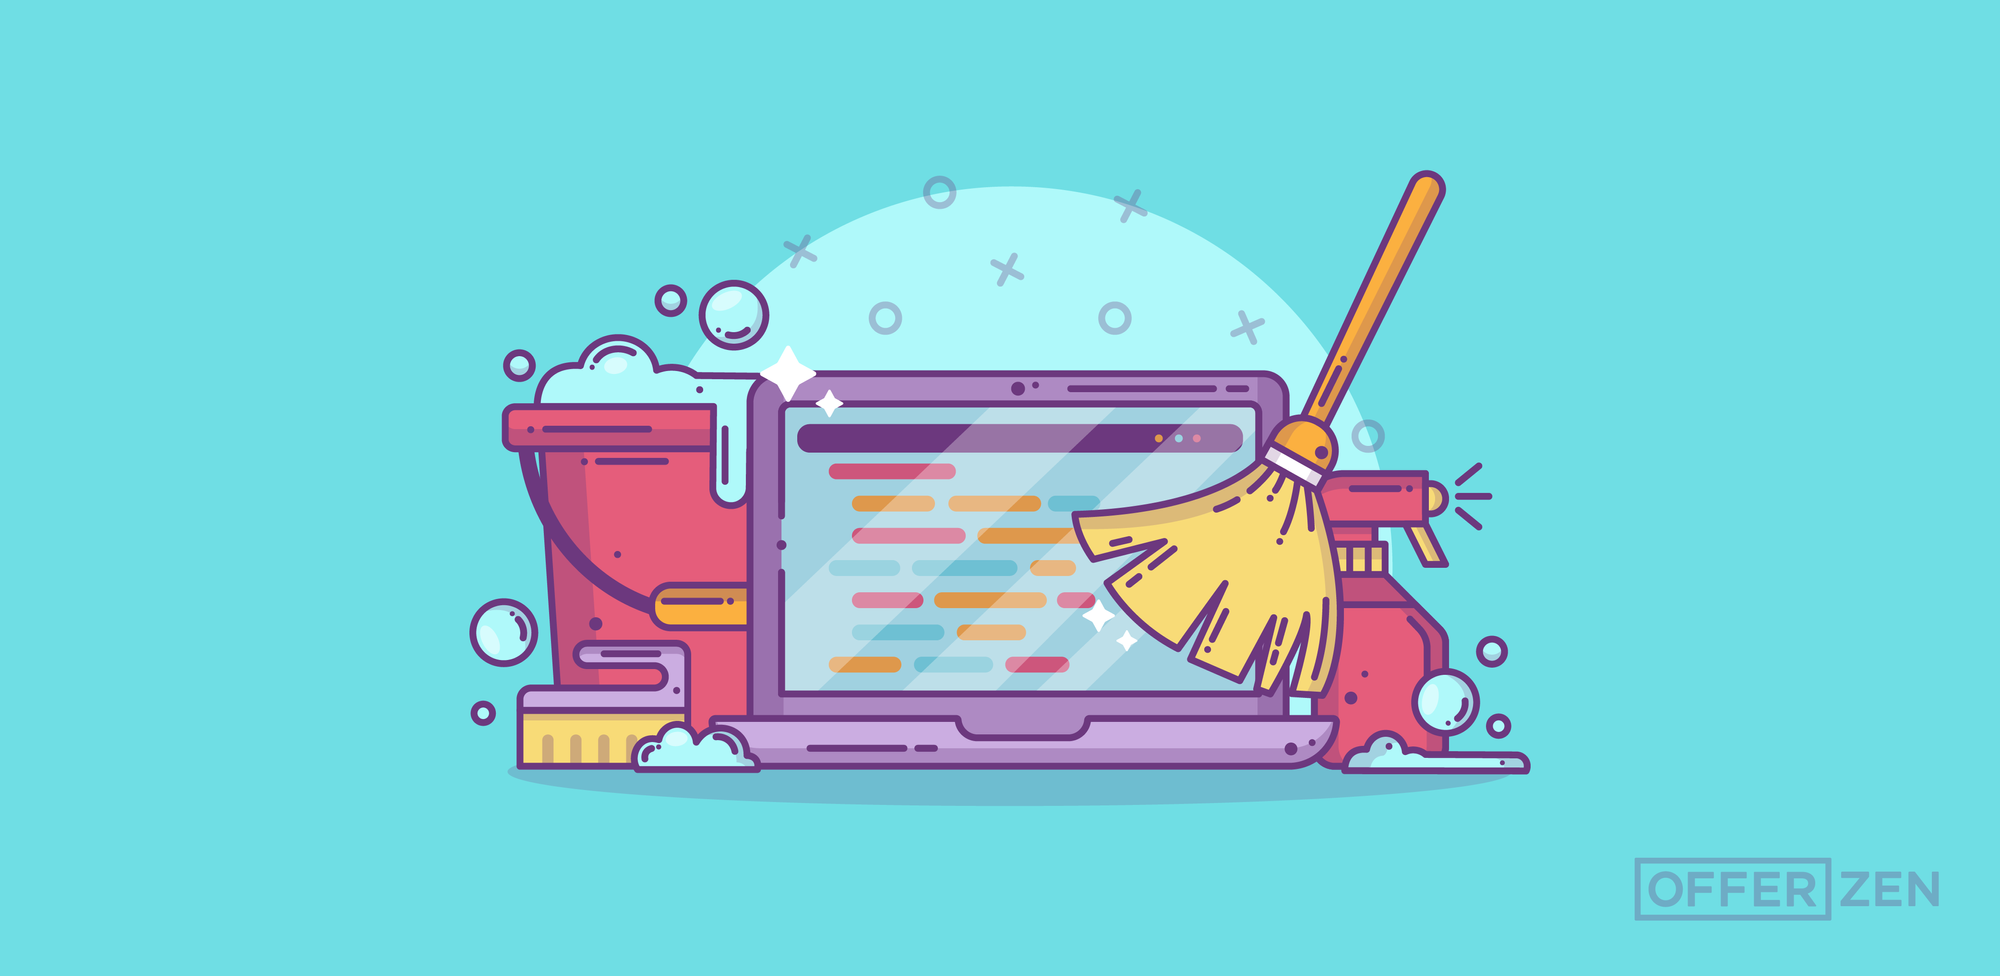 Alpha_Laptop-being-cleaned_What-I-Learned-About-Functional-Programming-in-JavaScript_Inner-Article-Image-02-1